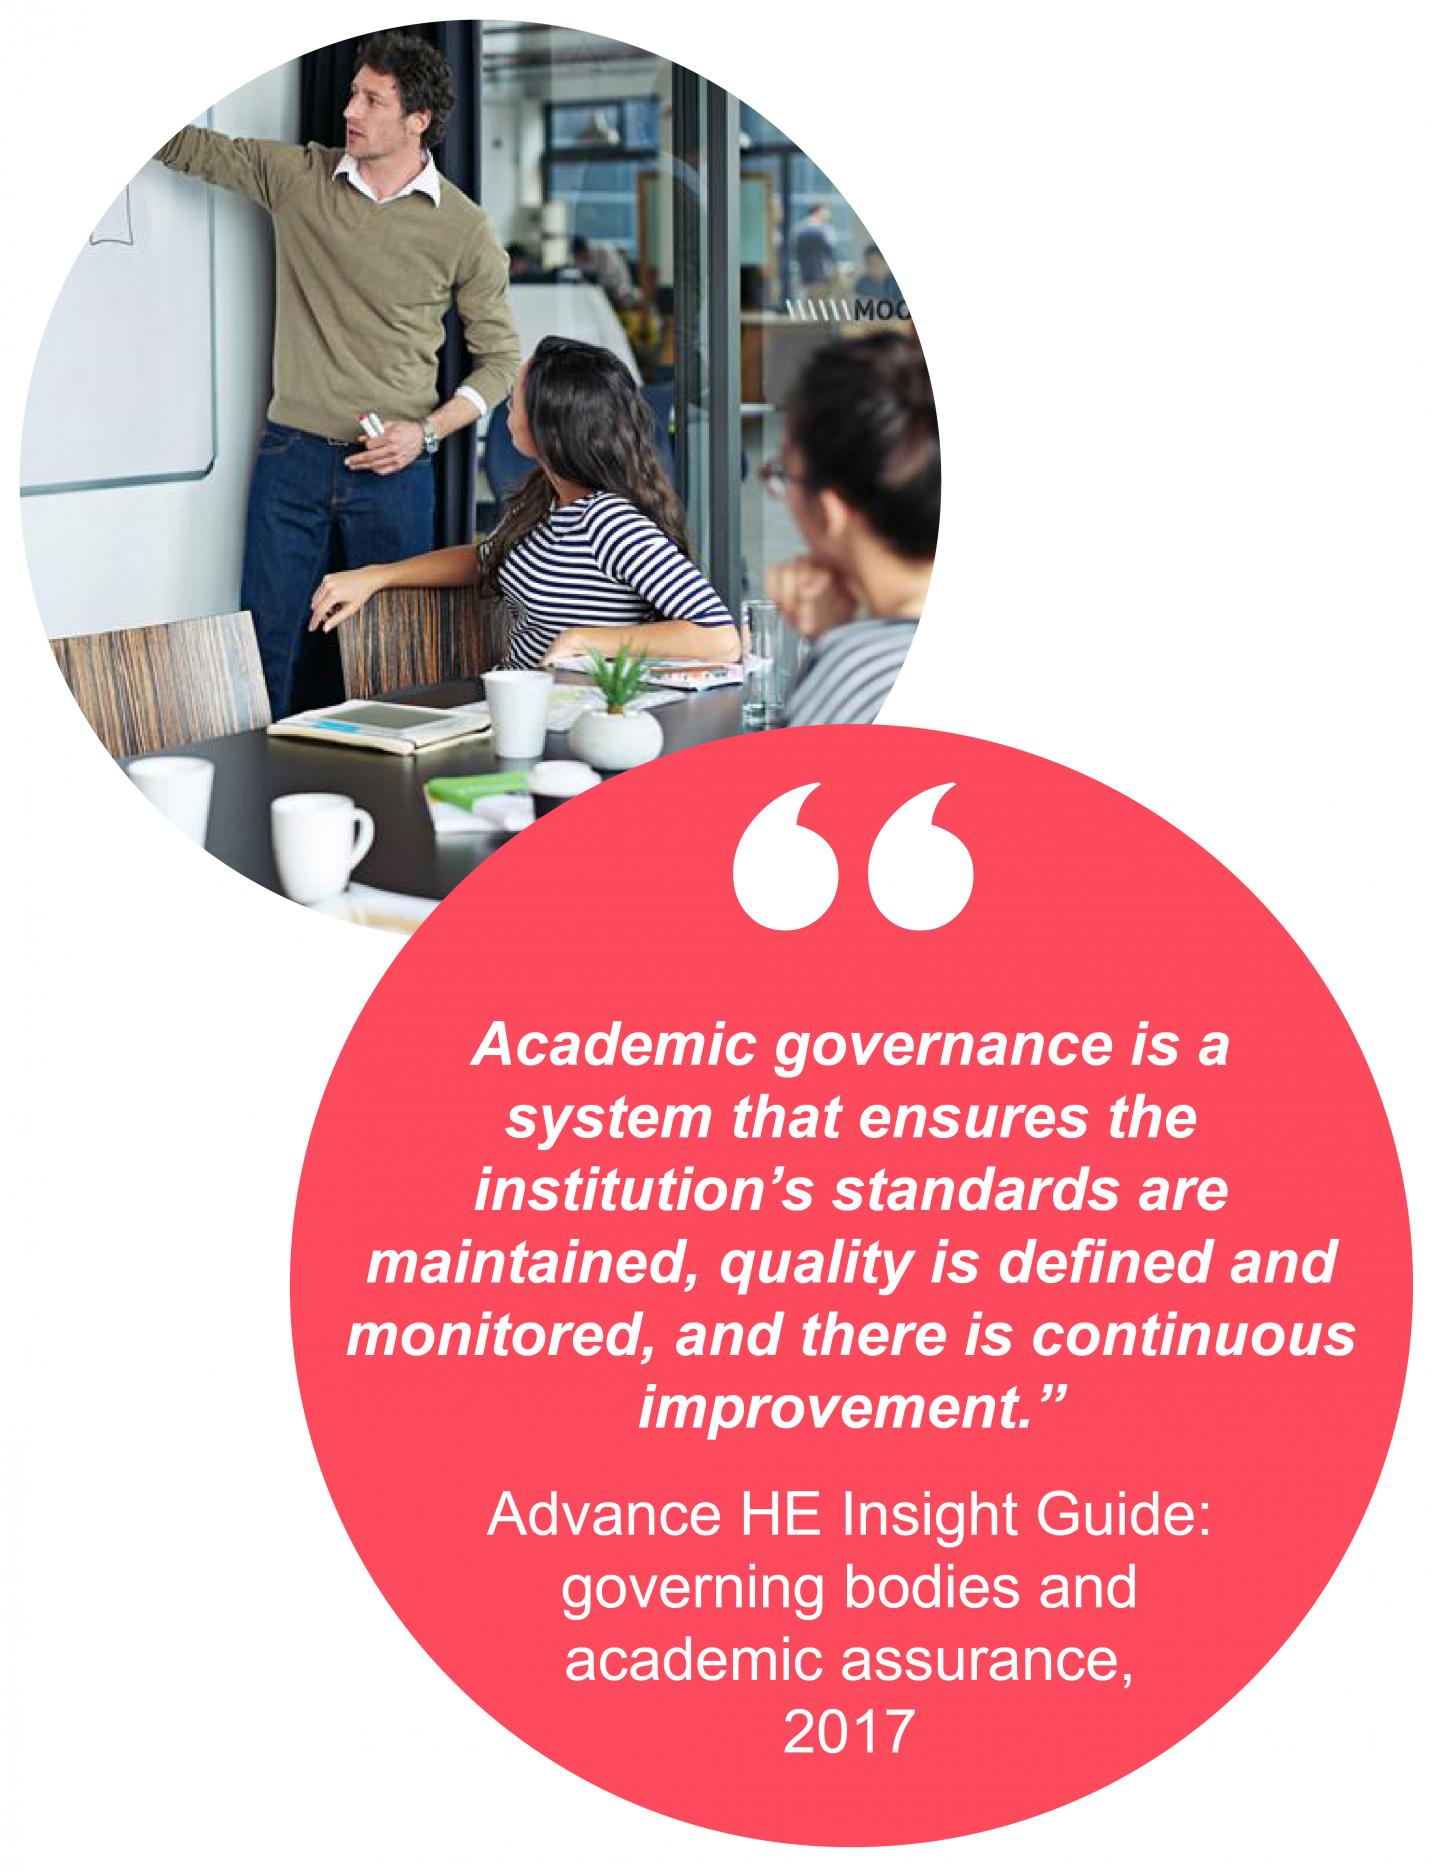 """Academic governance is a  system that ensures the  institution's standards are  maintained, quality is defined and  monitored, and there is continuous  improvement.""  Advance HE Insight Guide:  governing bodies and  academic assurance,  2017"